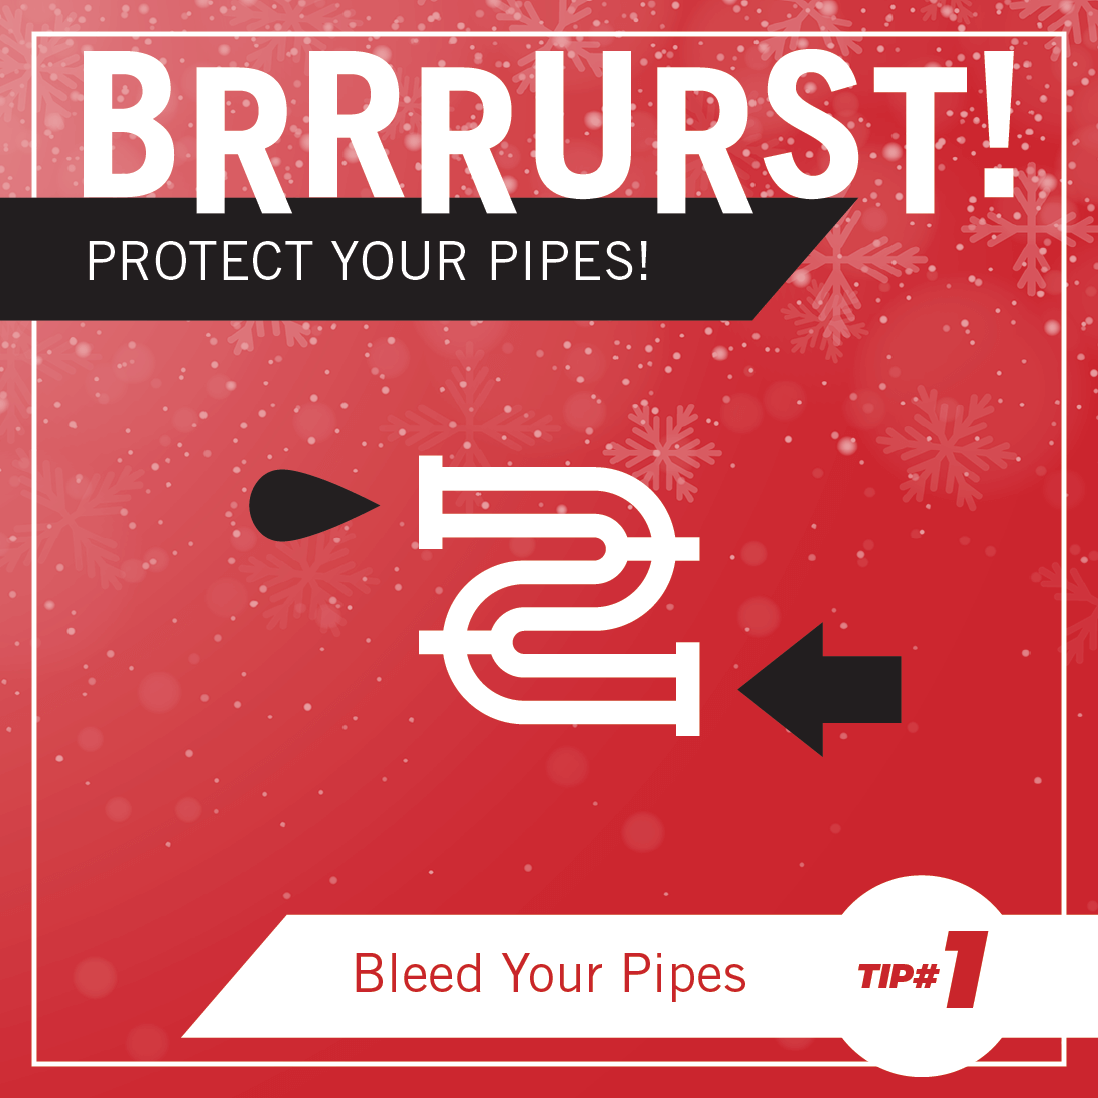 (PURE Restoration) Protect Your Pipes-01